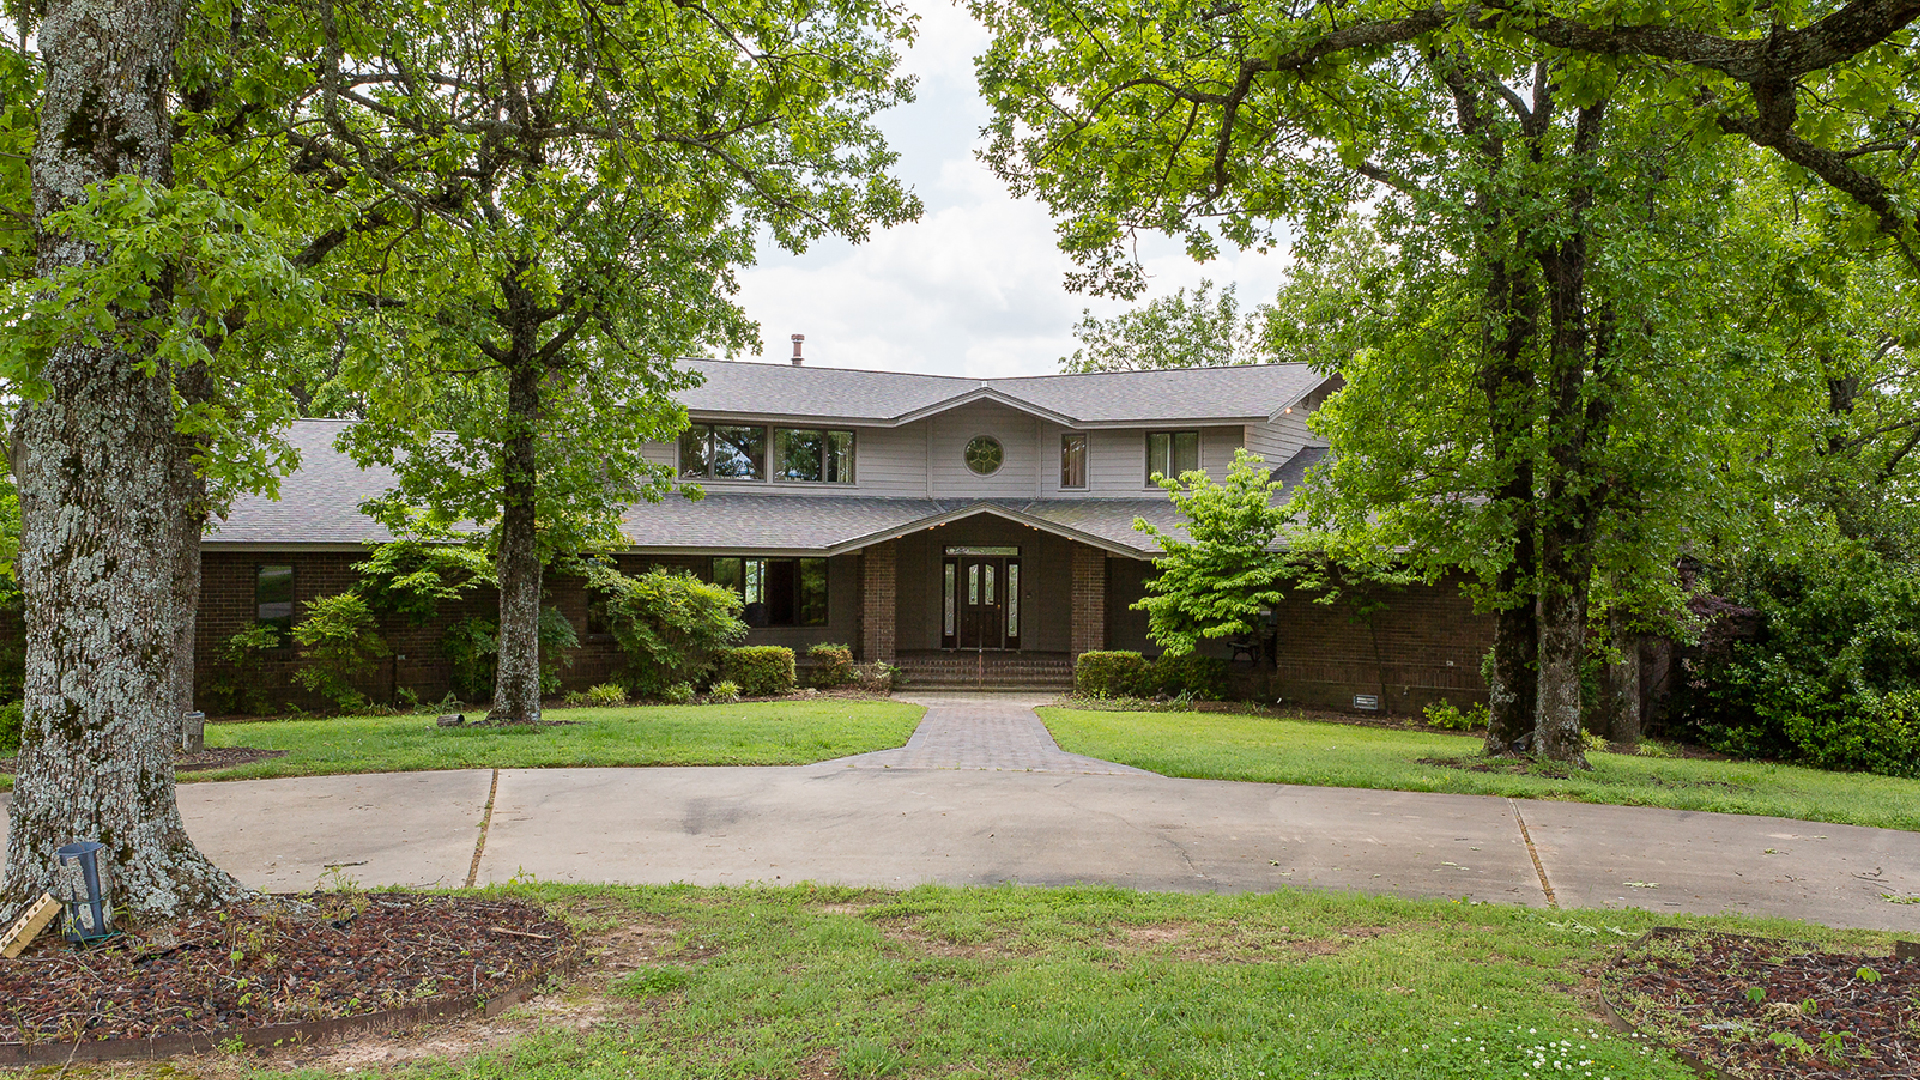 109 Woodcliff - Click here for virtual reality tour